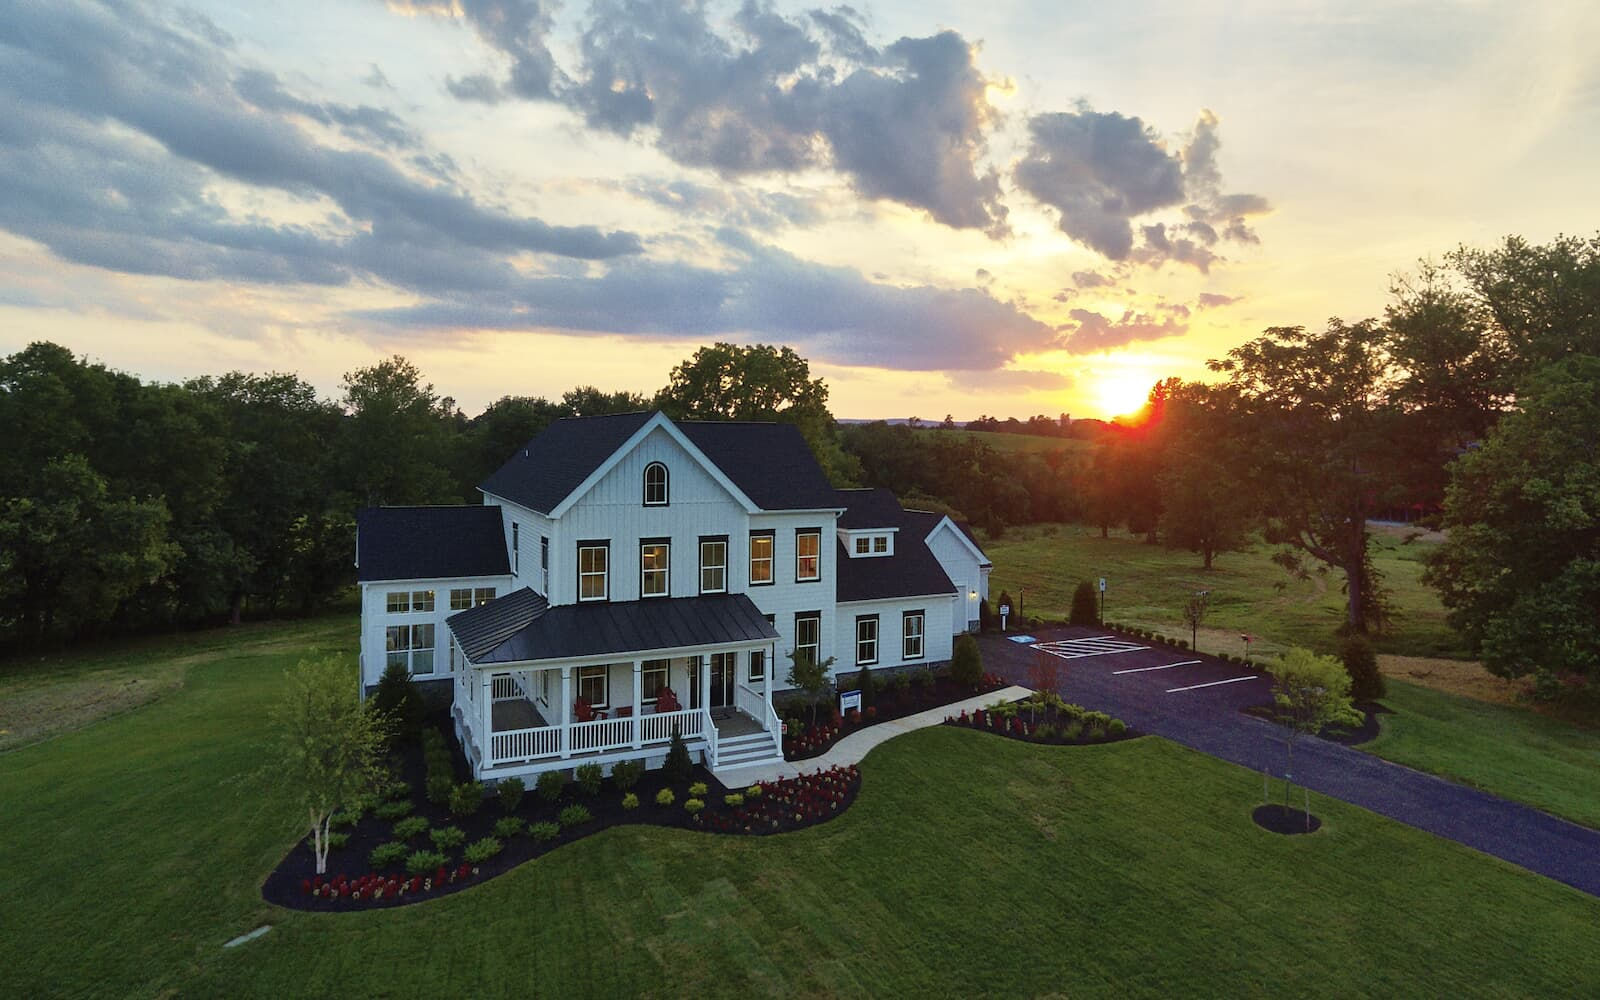 FillmoreII-exterior-dusk-single-family-home-leesburg-va-waterford-manor-brookfield-residential